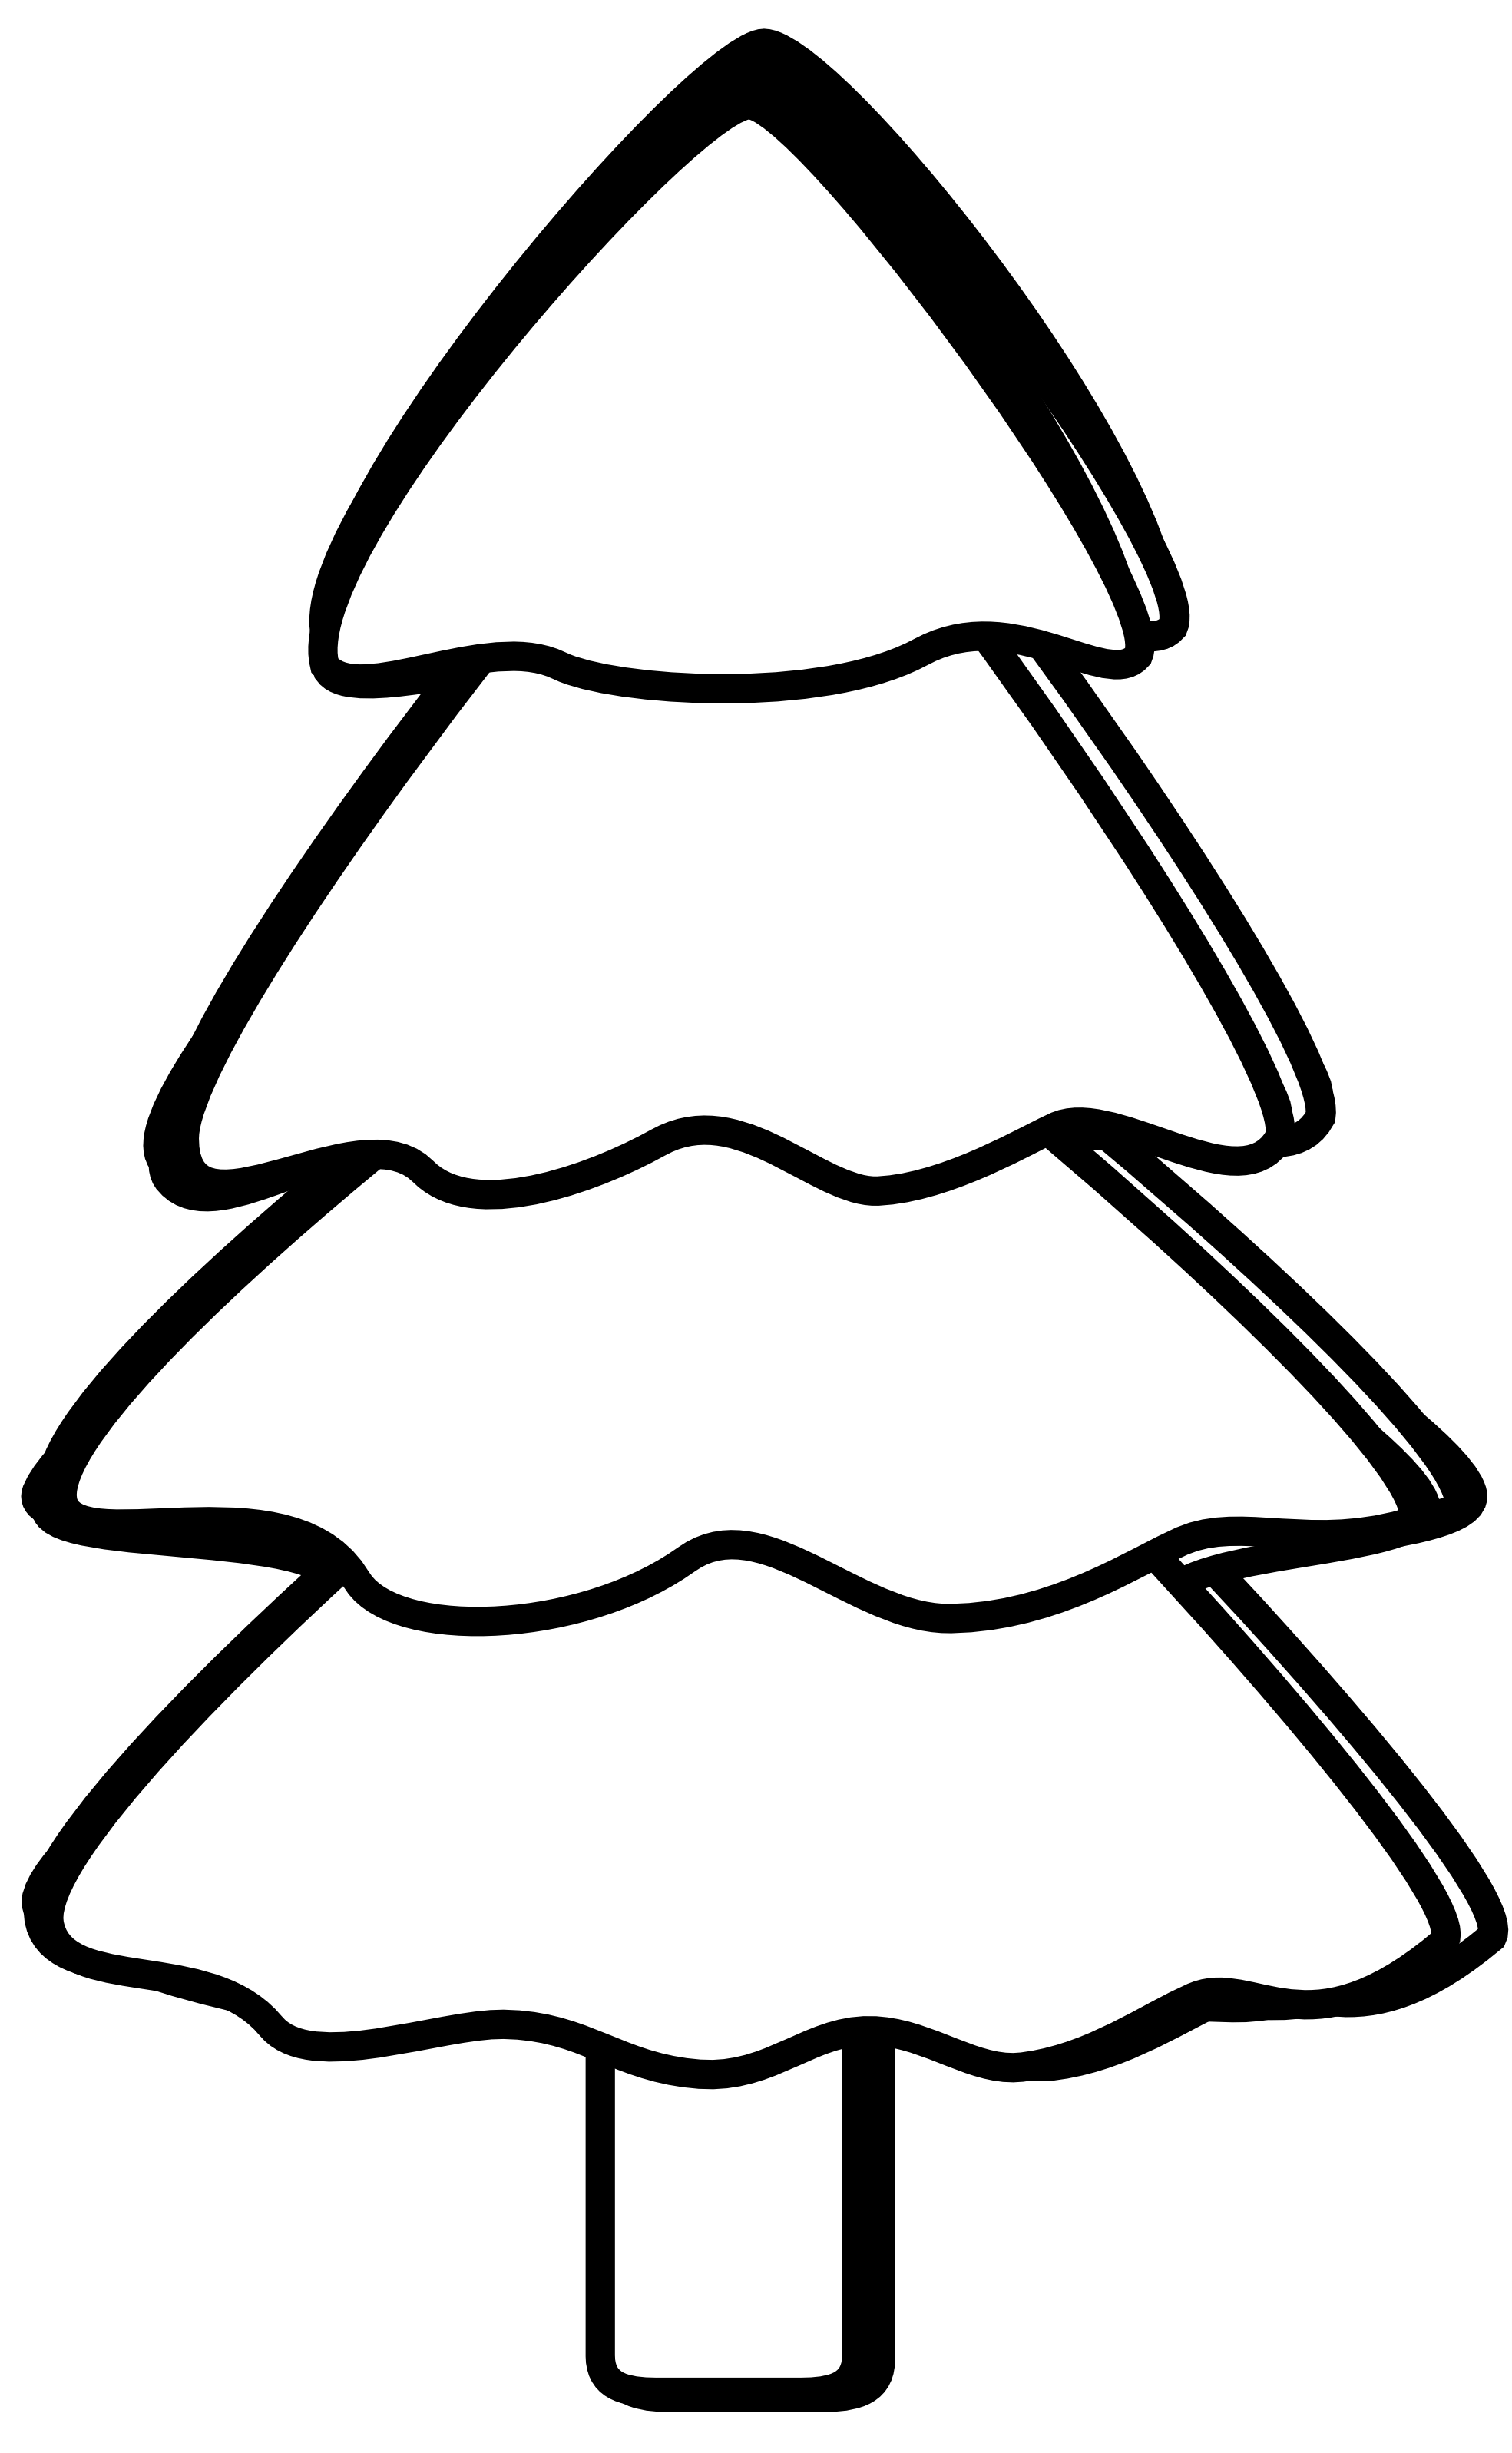 Simple Black And White Tree Drawing   Clipart Panda - Free ... (1969 x 3194 Pixel)